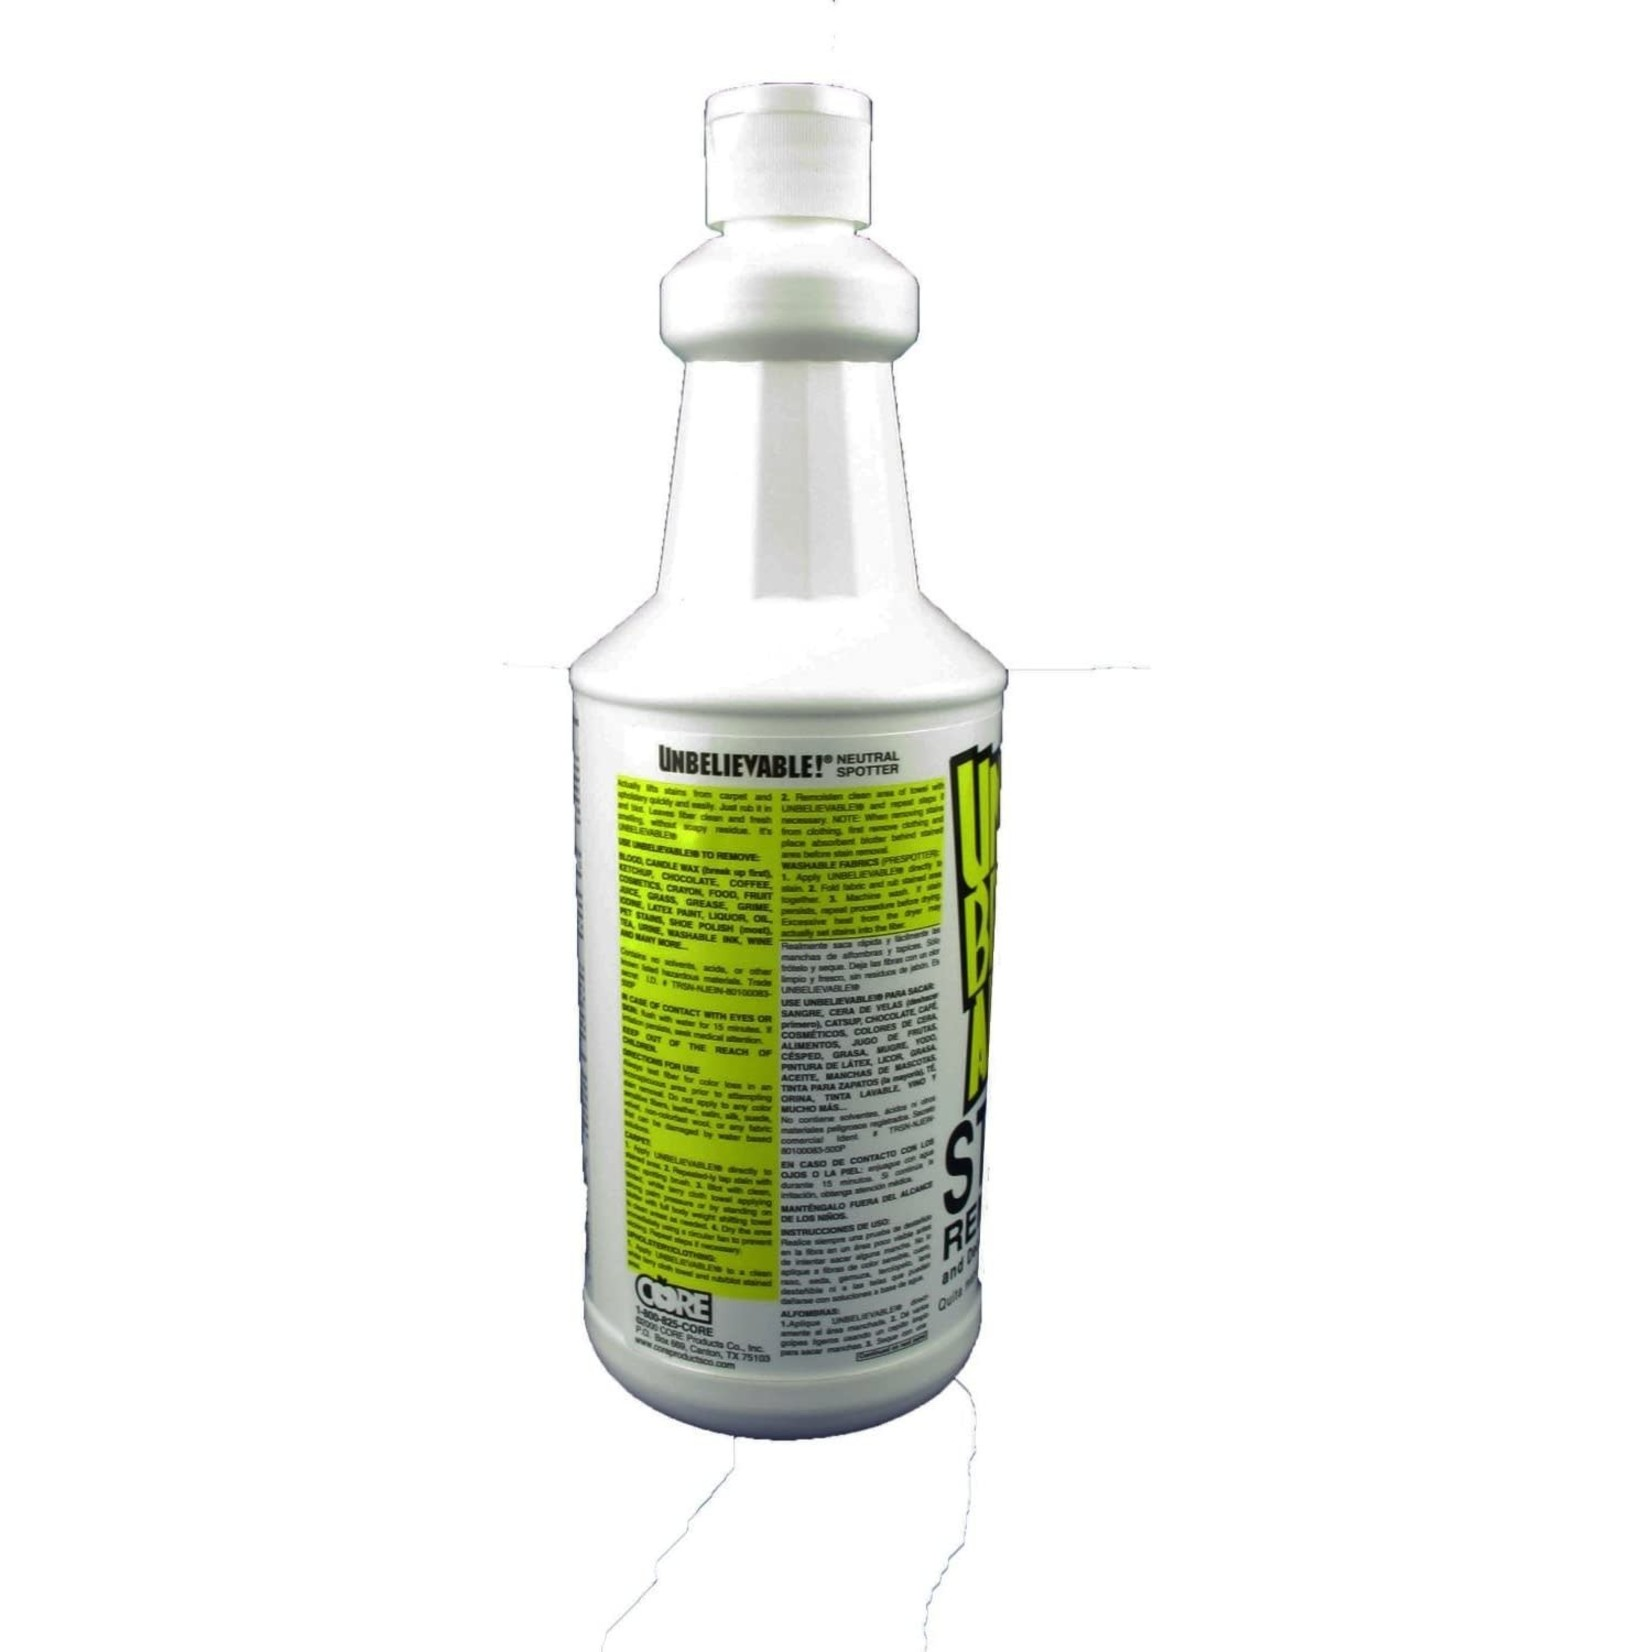 Core Products UNBELIEVABLE!® STAIN REMOVER - 32oz